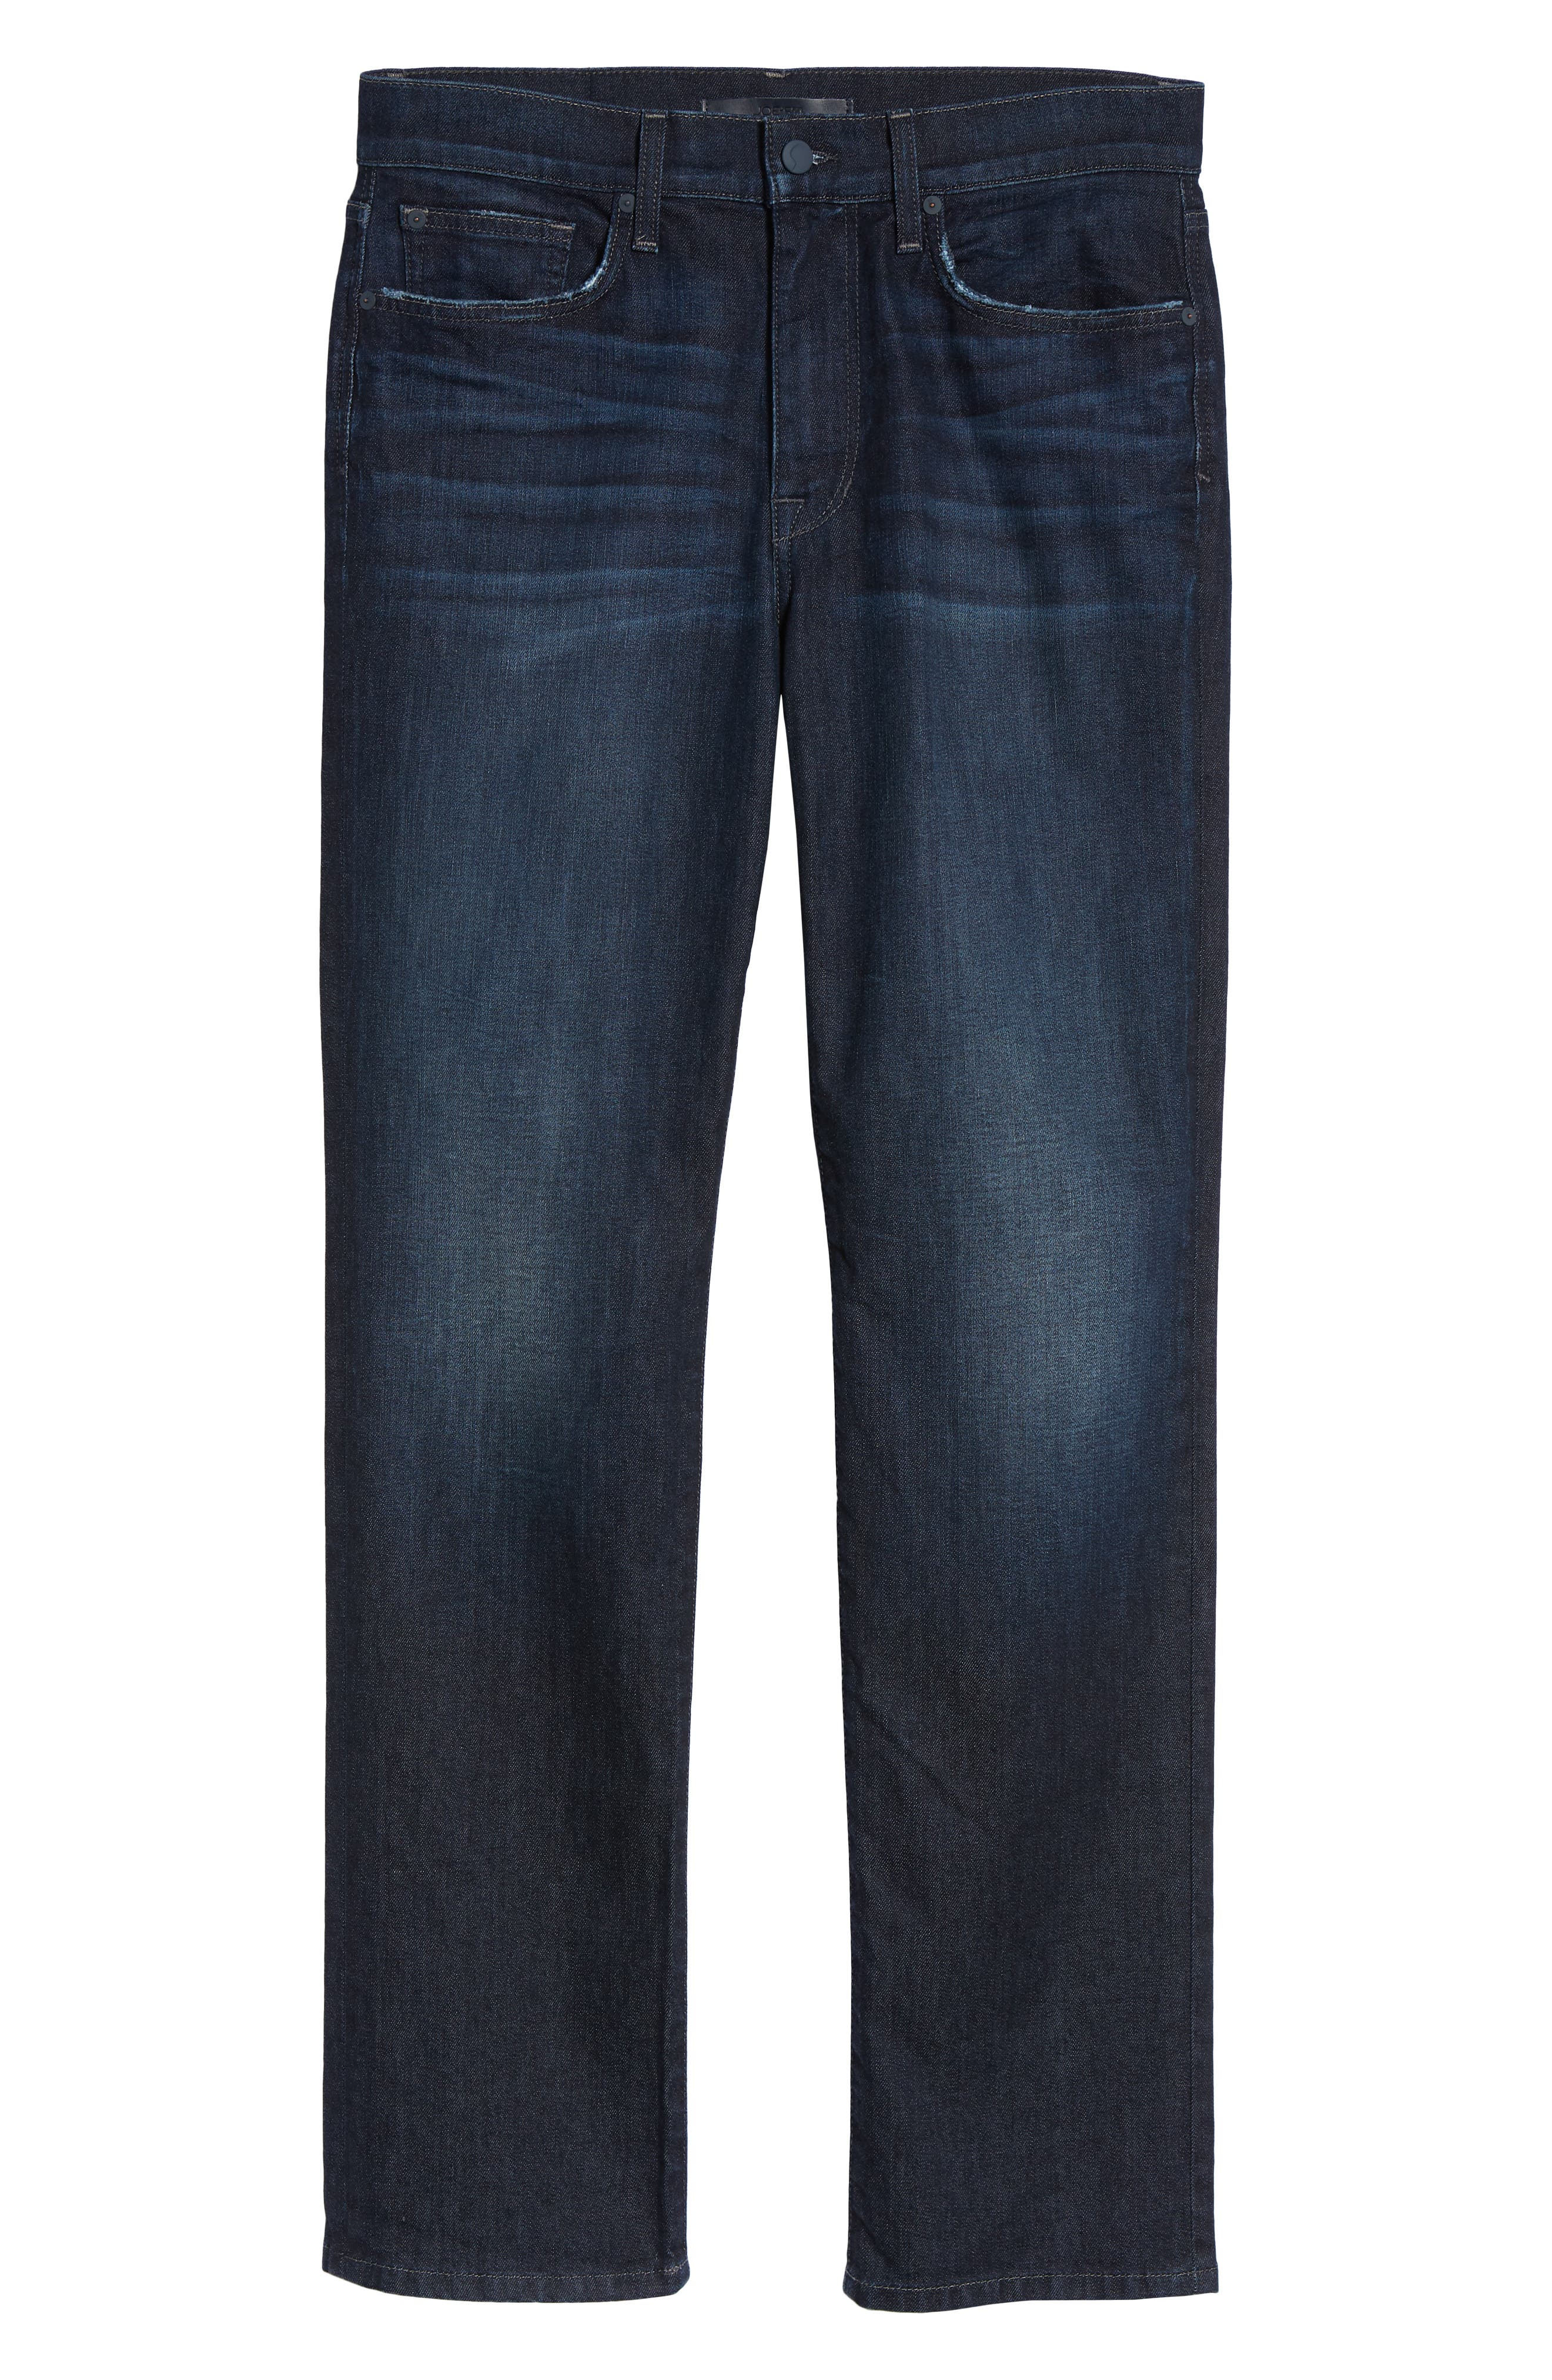 Classic Straight Fit Jeans,                             Alternate thumbnail 6, color,                             LUCAN